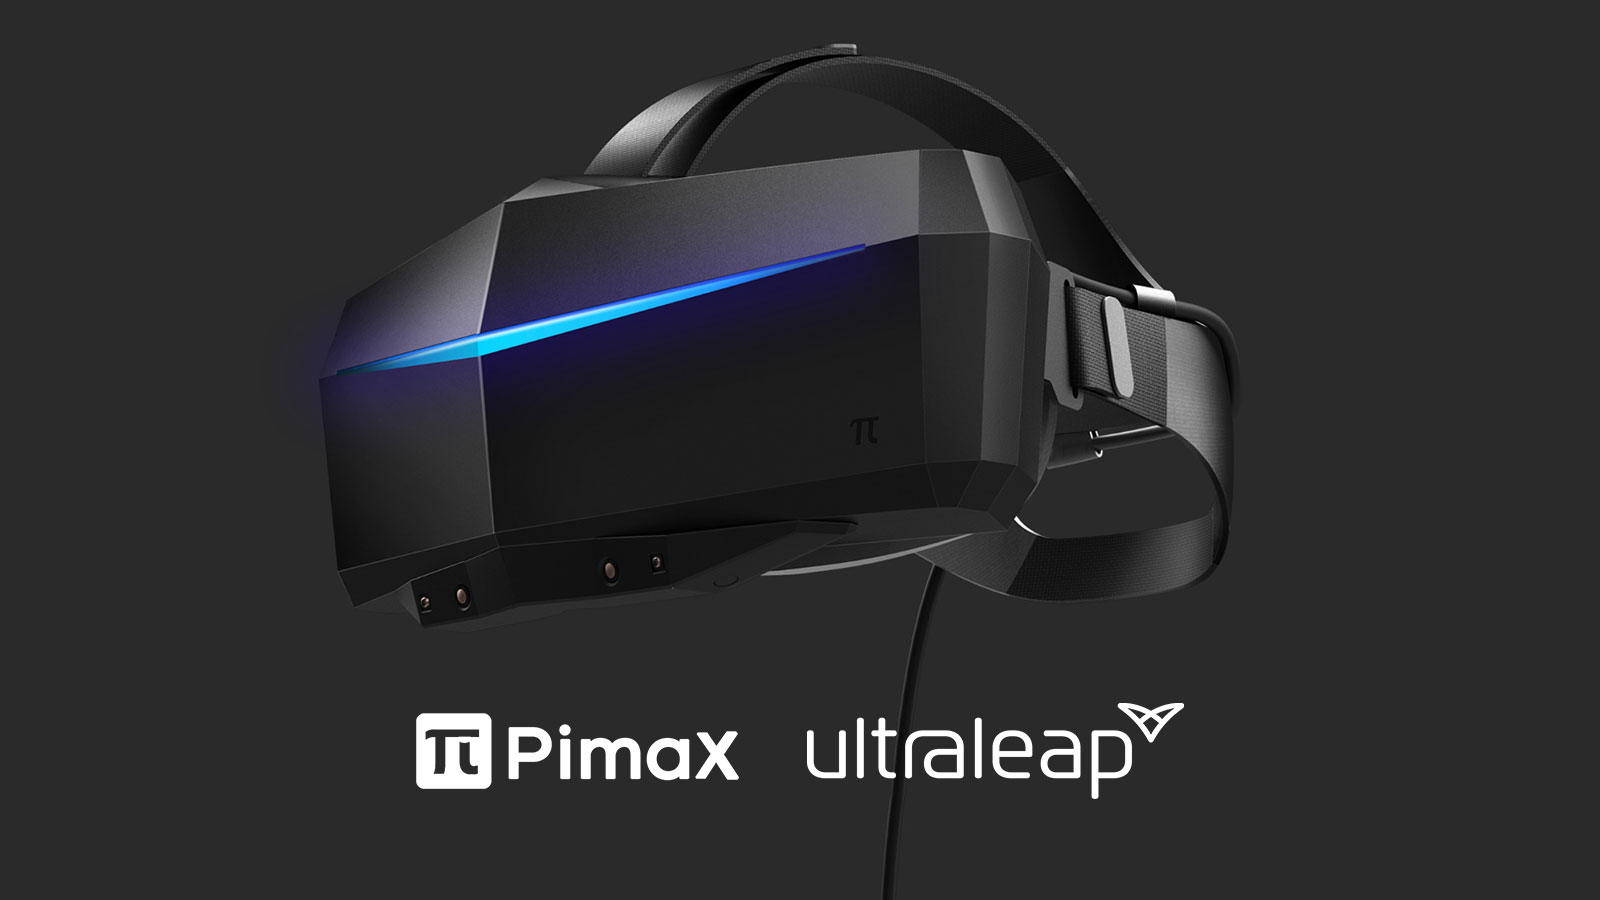 Pimax headset ultraleap hand tracking